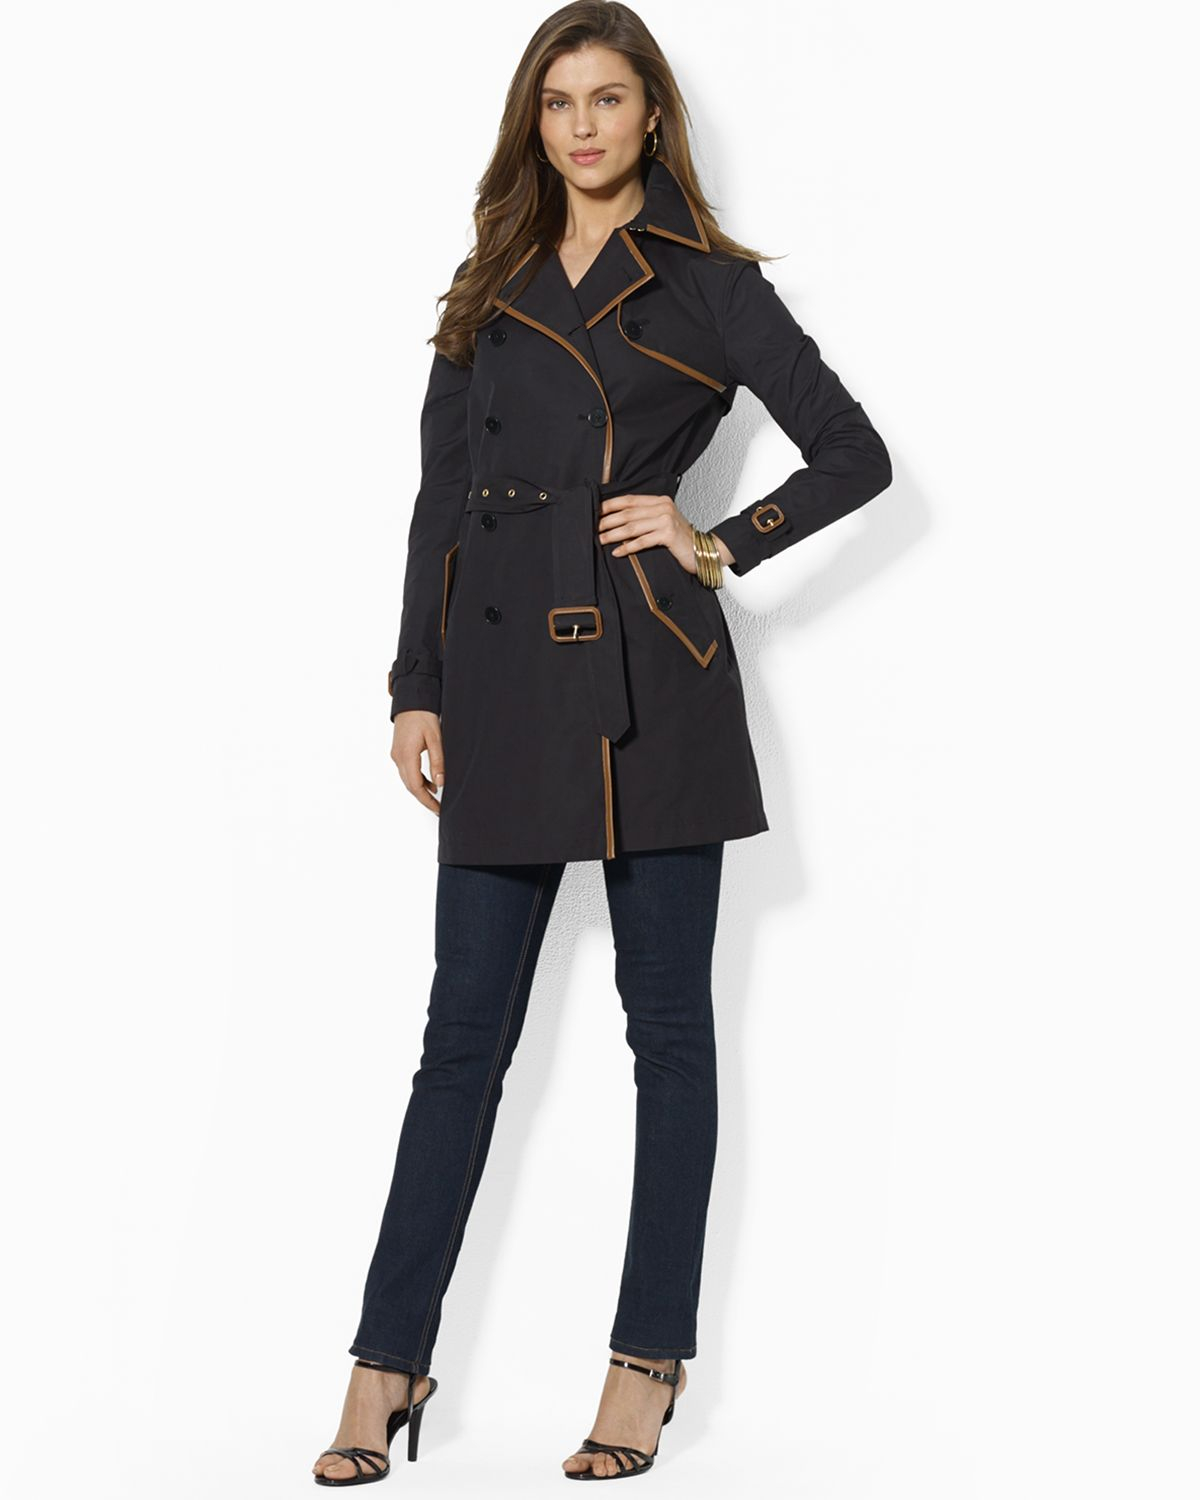 c16e9623 Ralph Lauren Black Belted Trench Coat with Faux Leather Trim